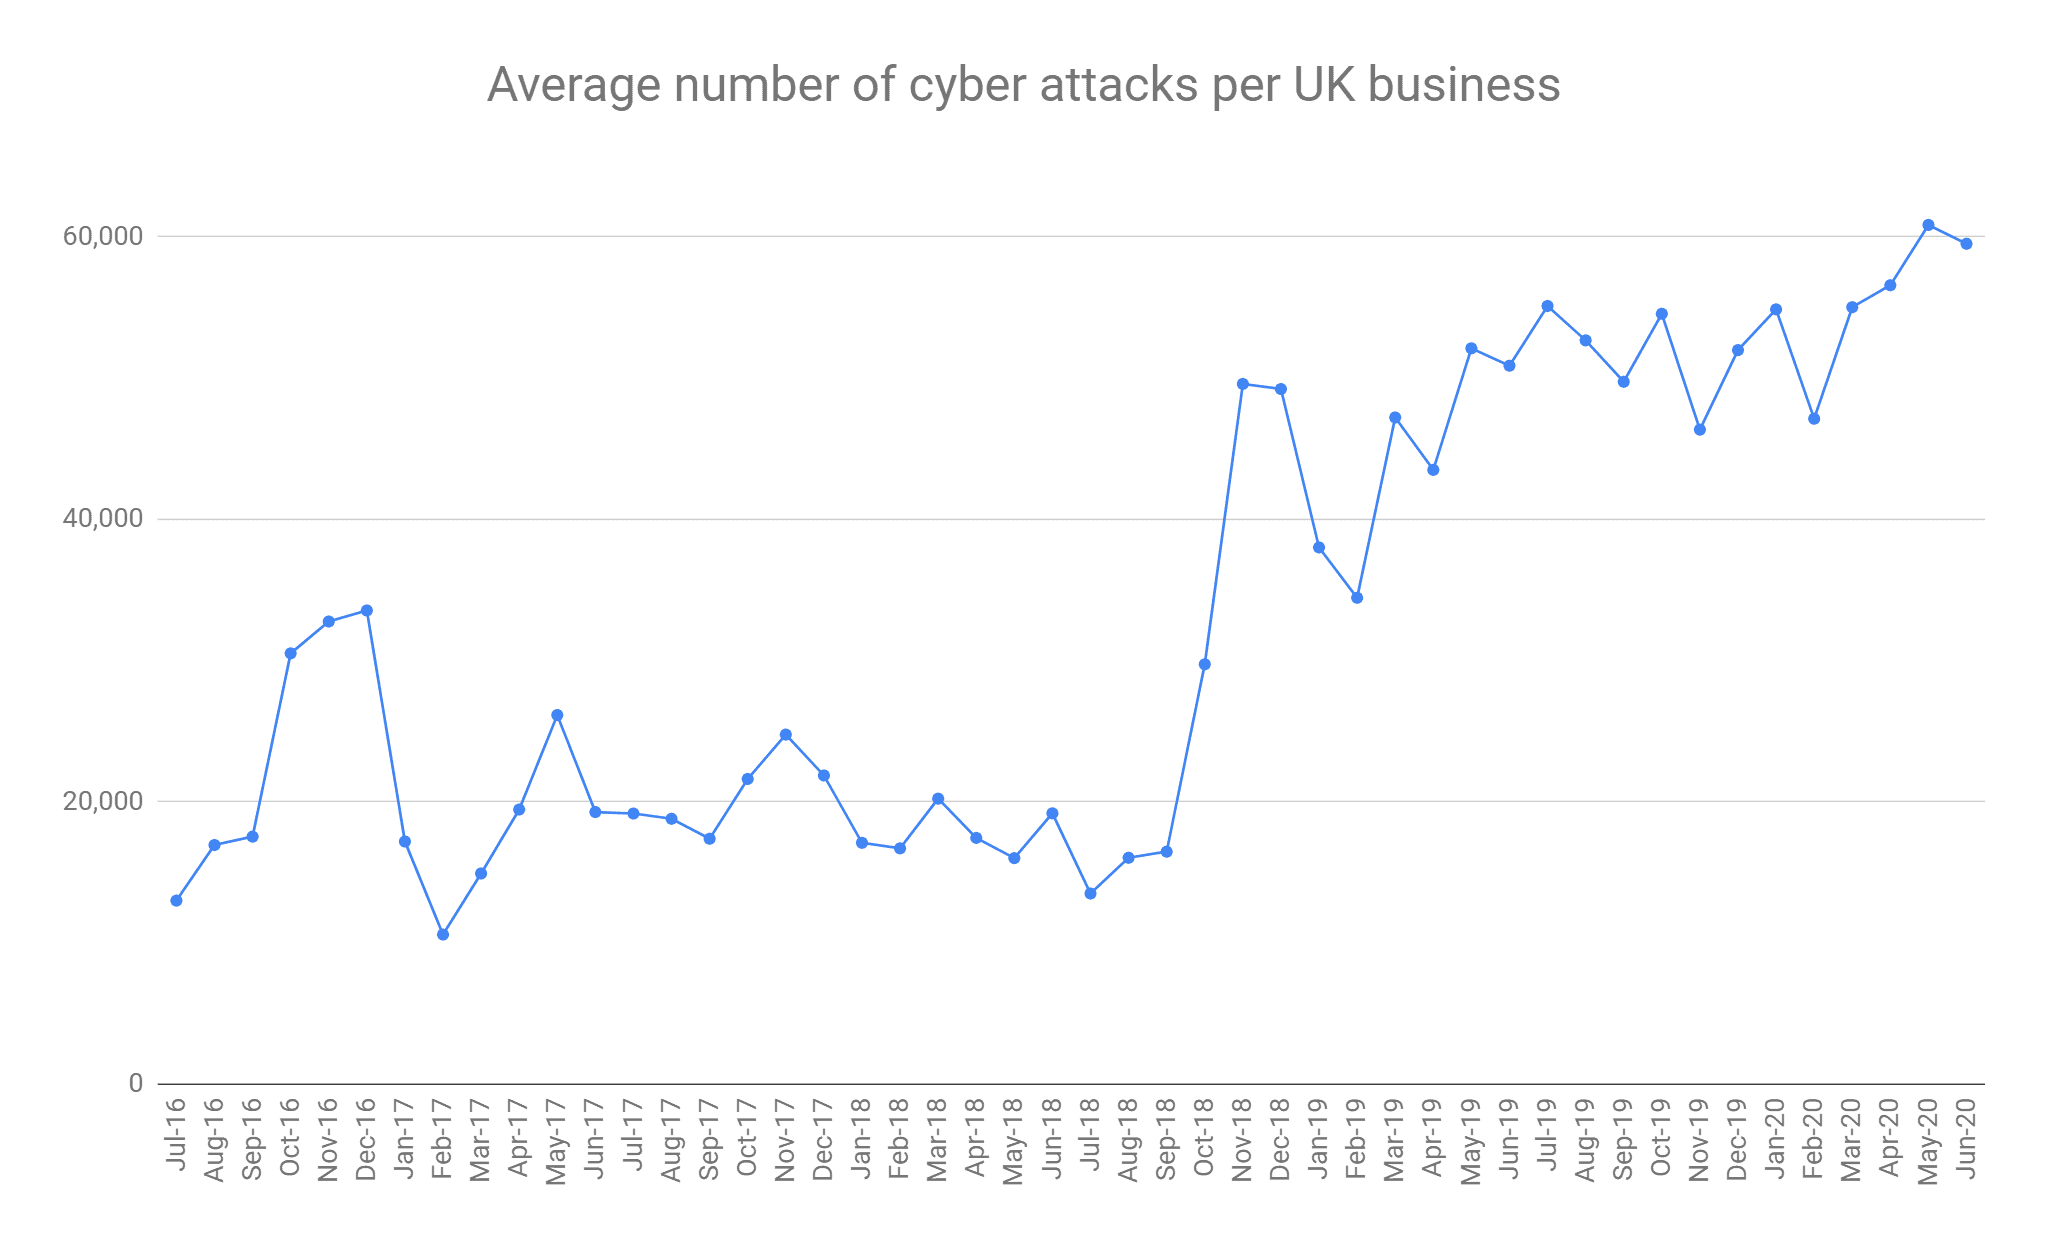 cyberreportq2_2020_avattacksperbusiness_27july2020_2048